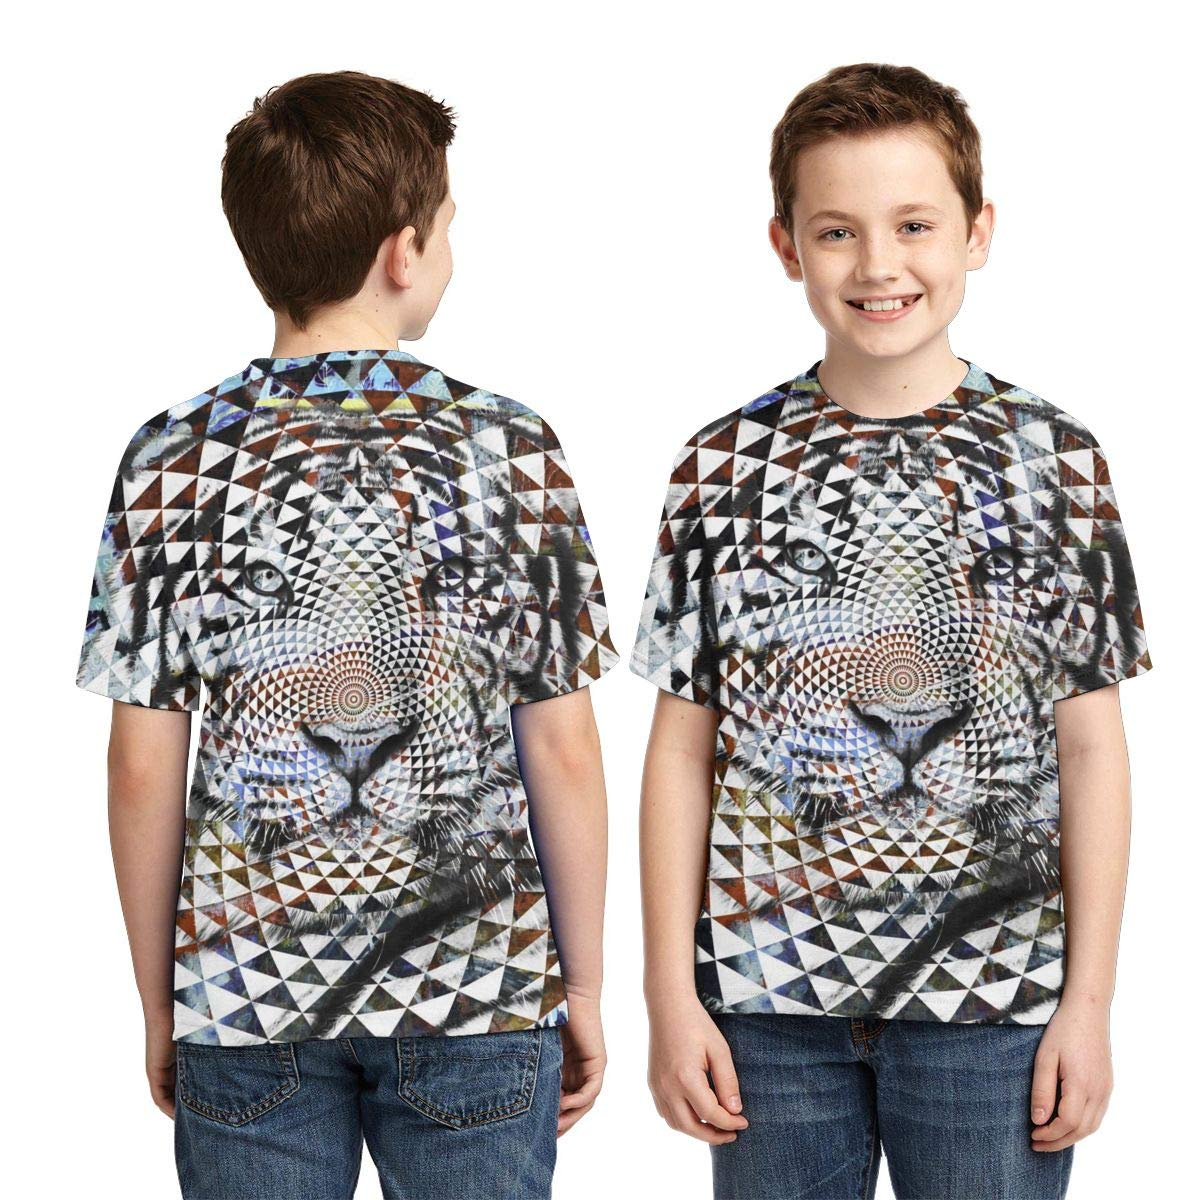 Psychedelic Tiger Boys Print Graphic Tee Short Sleeve T-Shirt